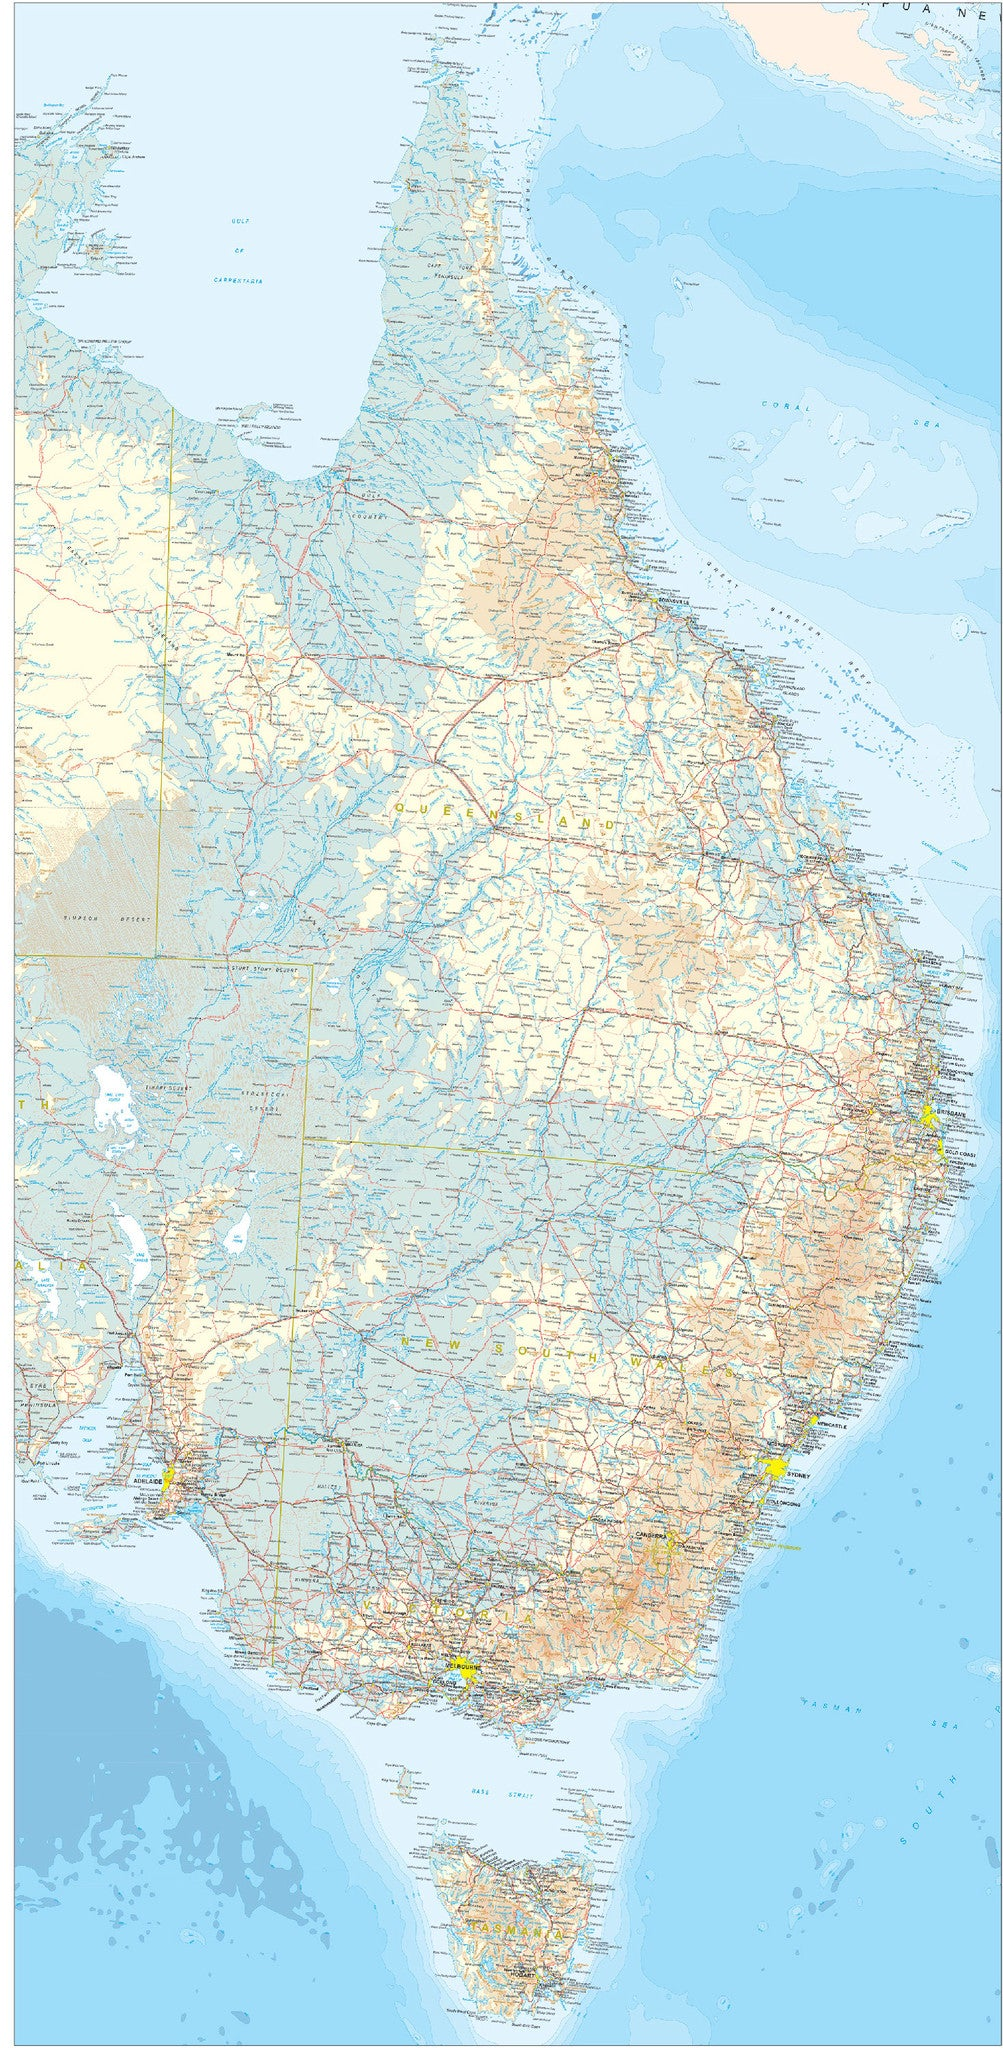 Map Eastern Australia.Eastern Australia Regional Map 700 X 1400mm Bma Laminated Wall Map